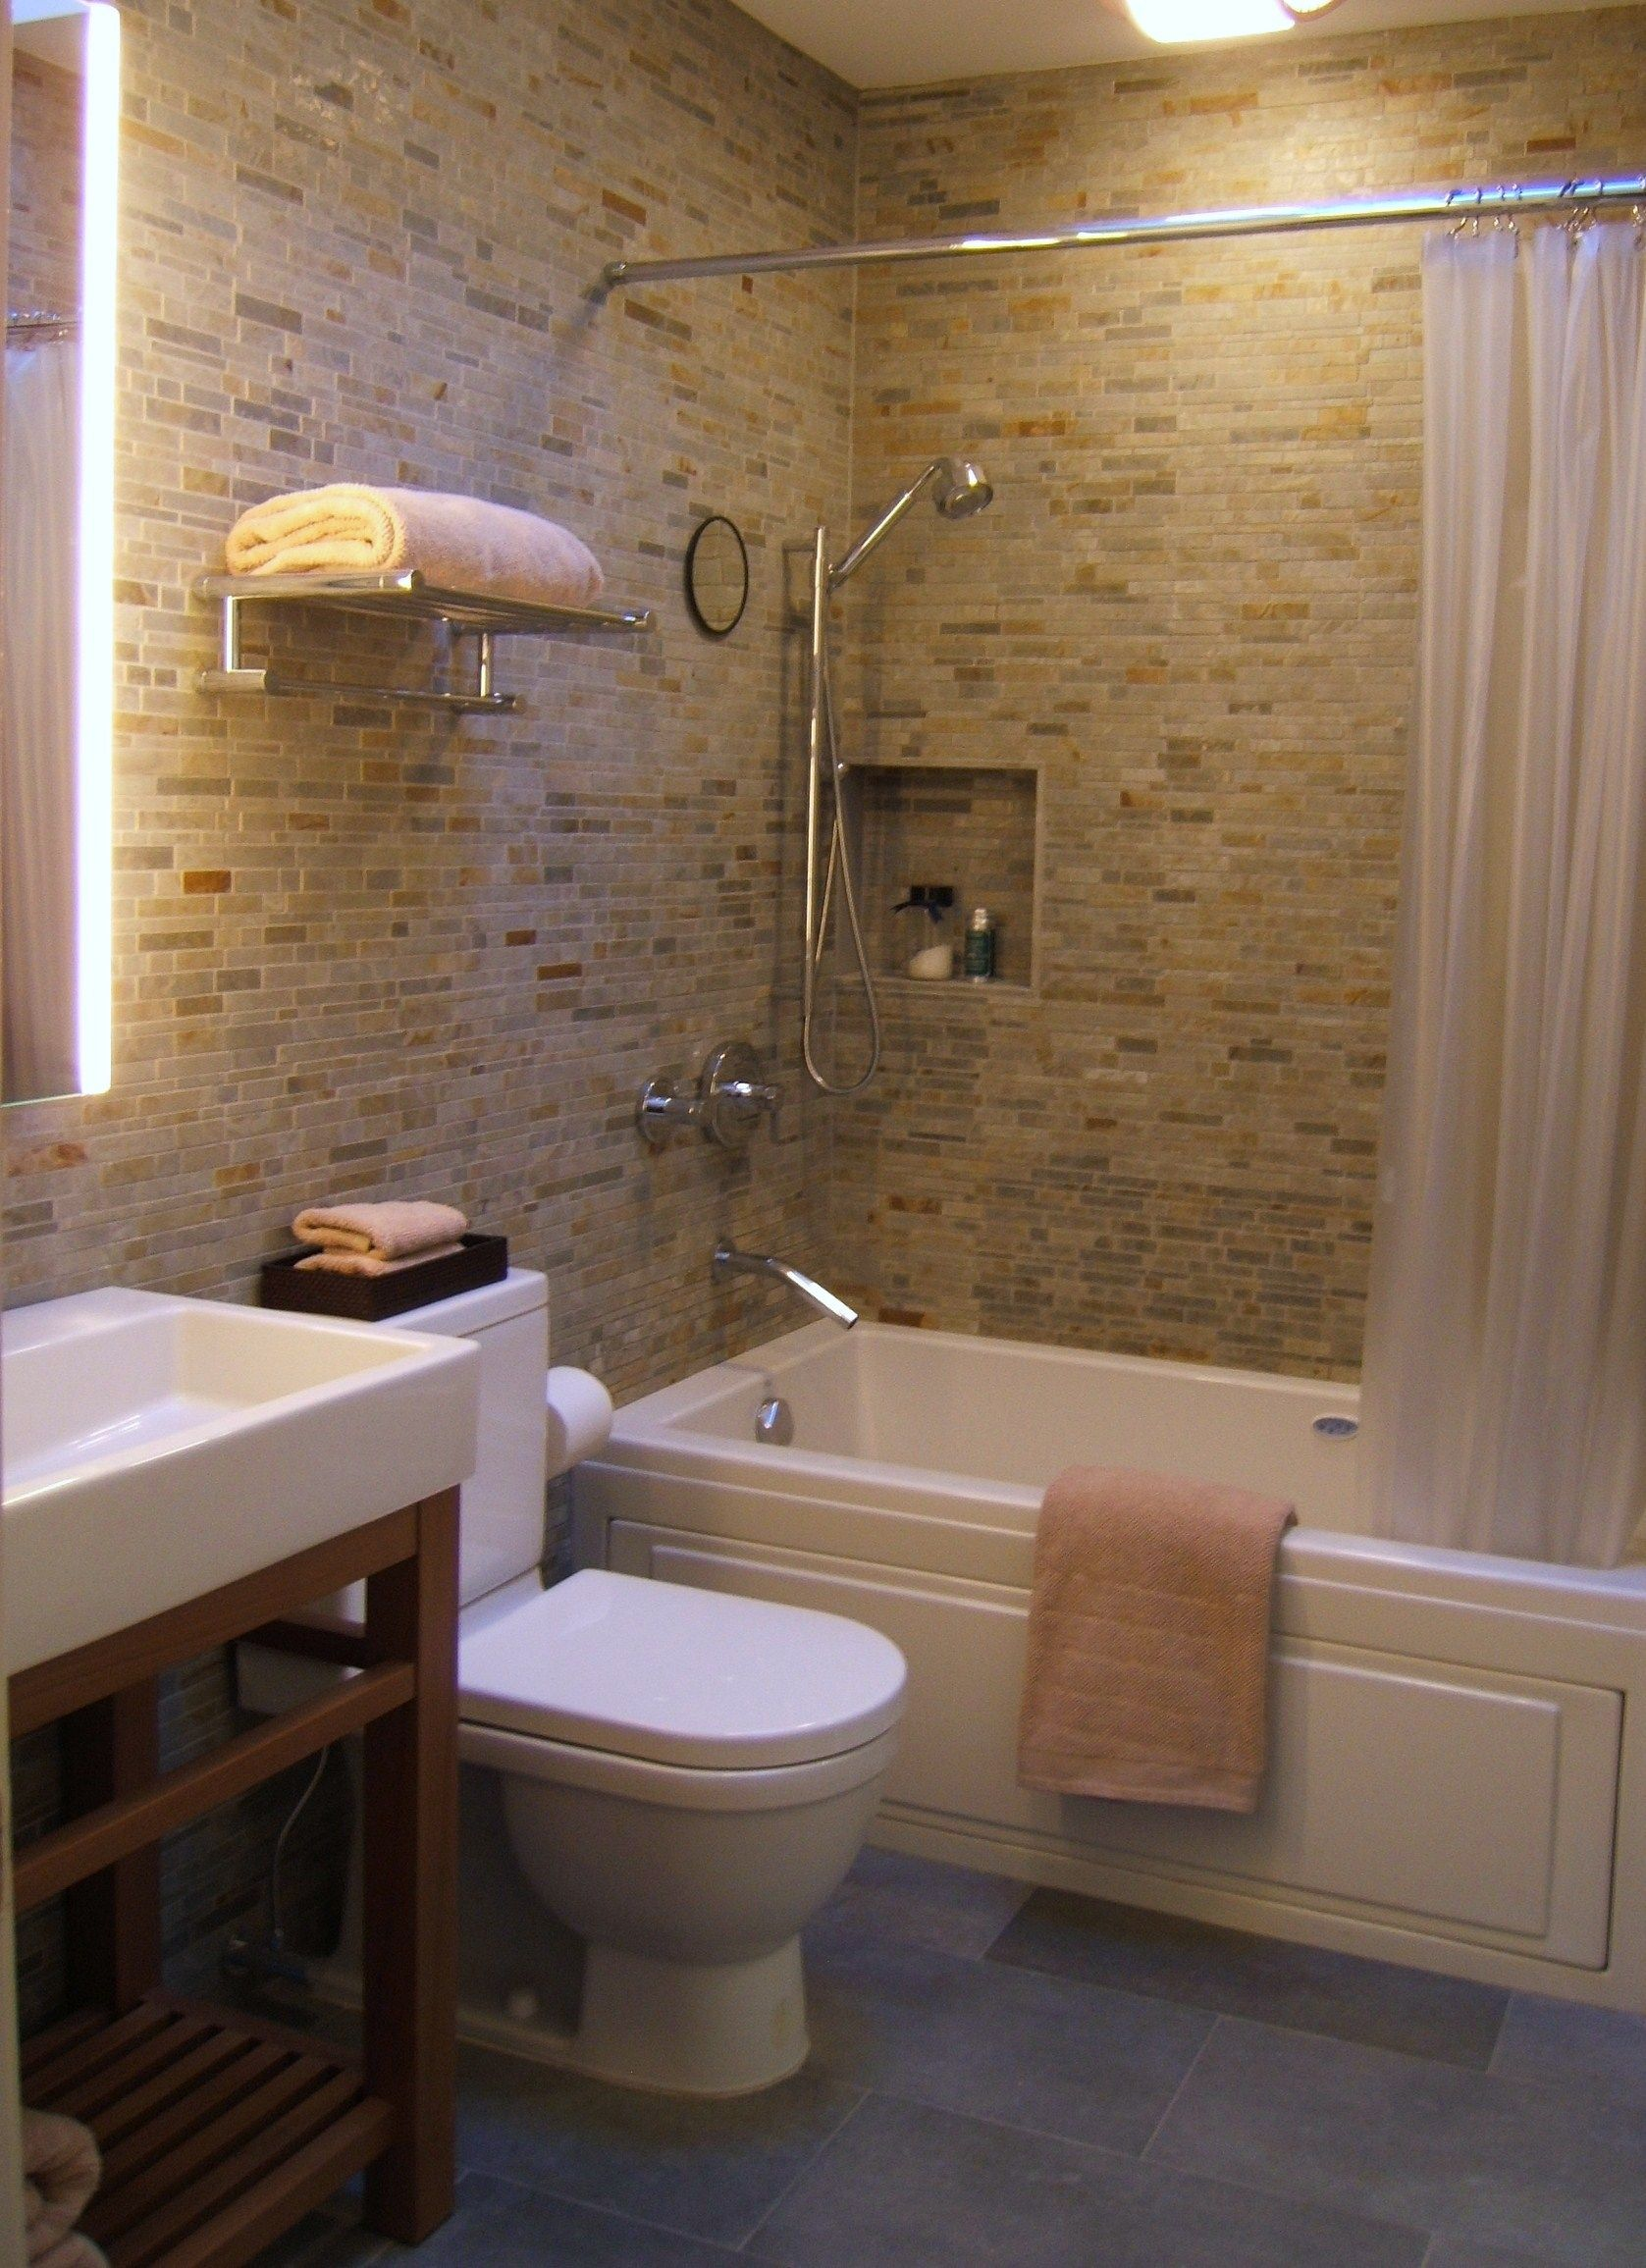 Small bathroom designs south africa small bath for Bathroom designs simple and small